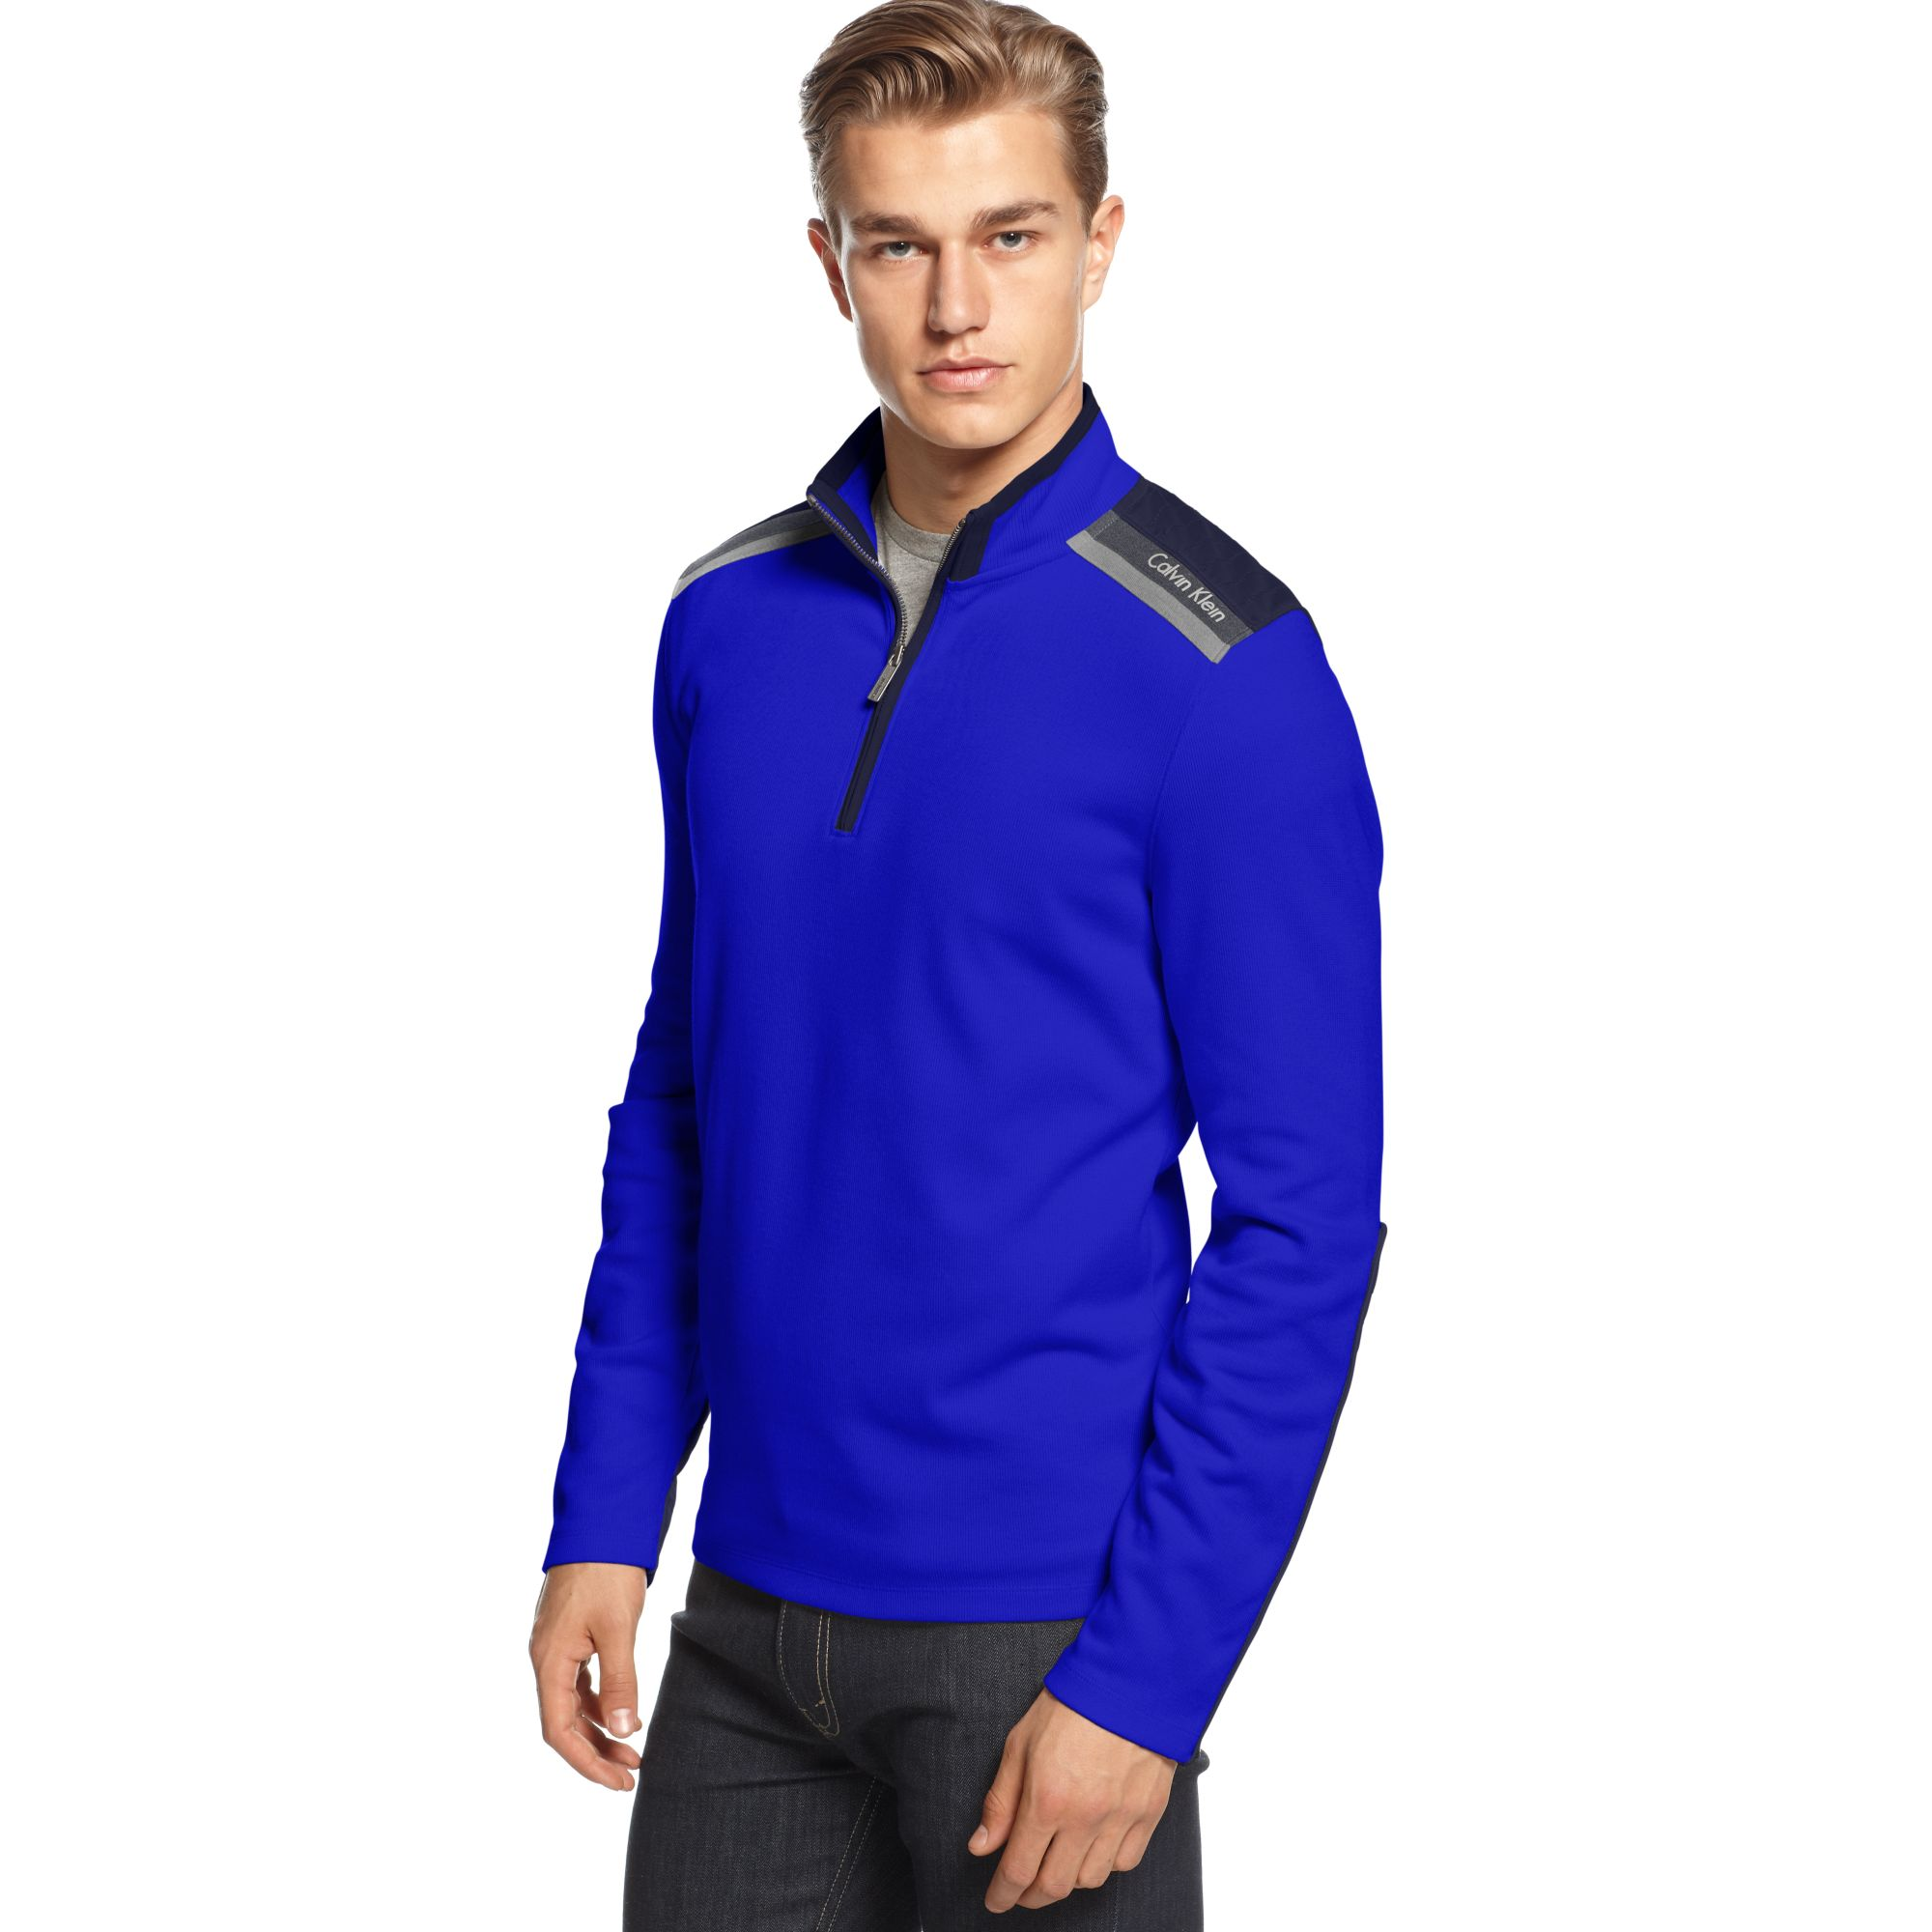 calvin klein mixed media french rib quarter zipper sweater in blue for men blue ruin lyst. Black Bedroom Furniture Sets. Home Design Ideas